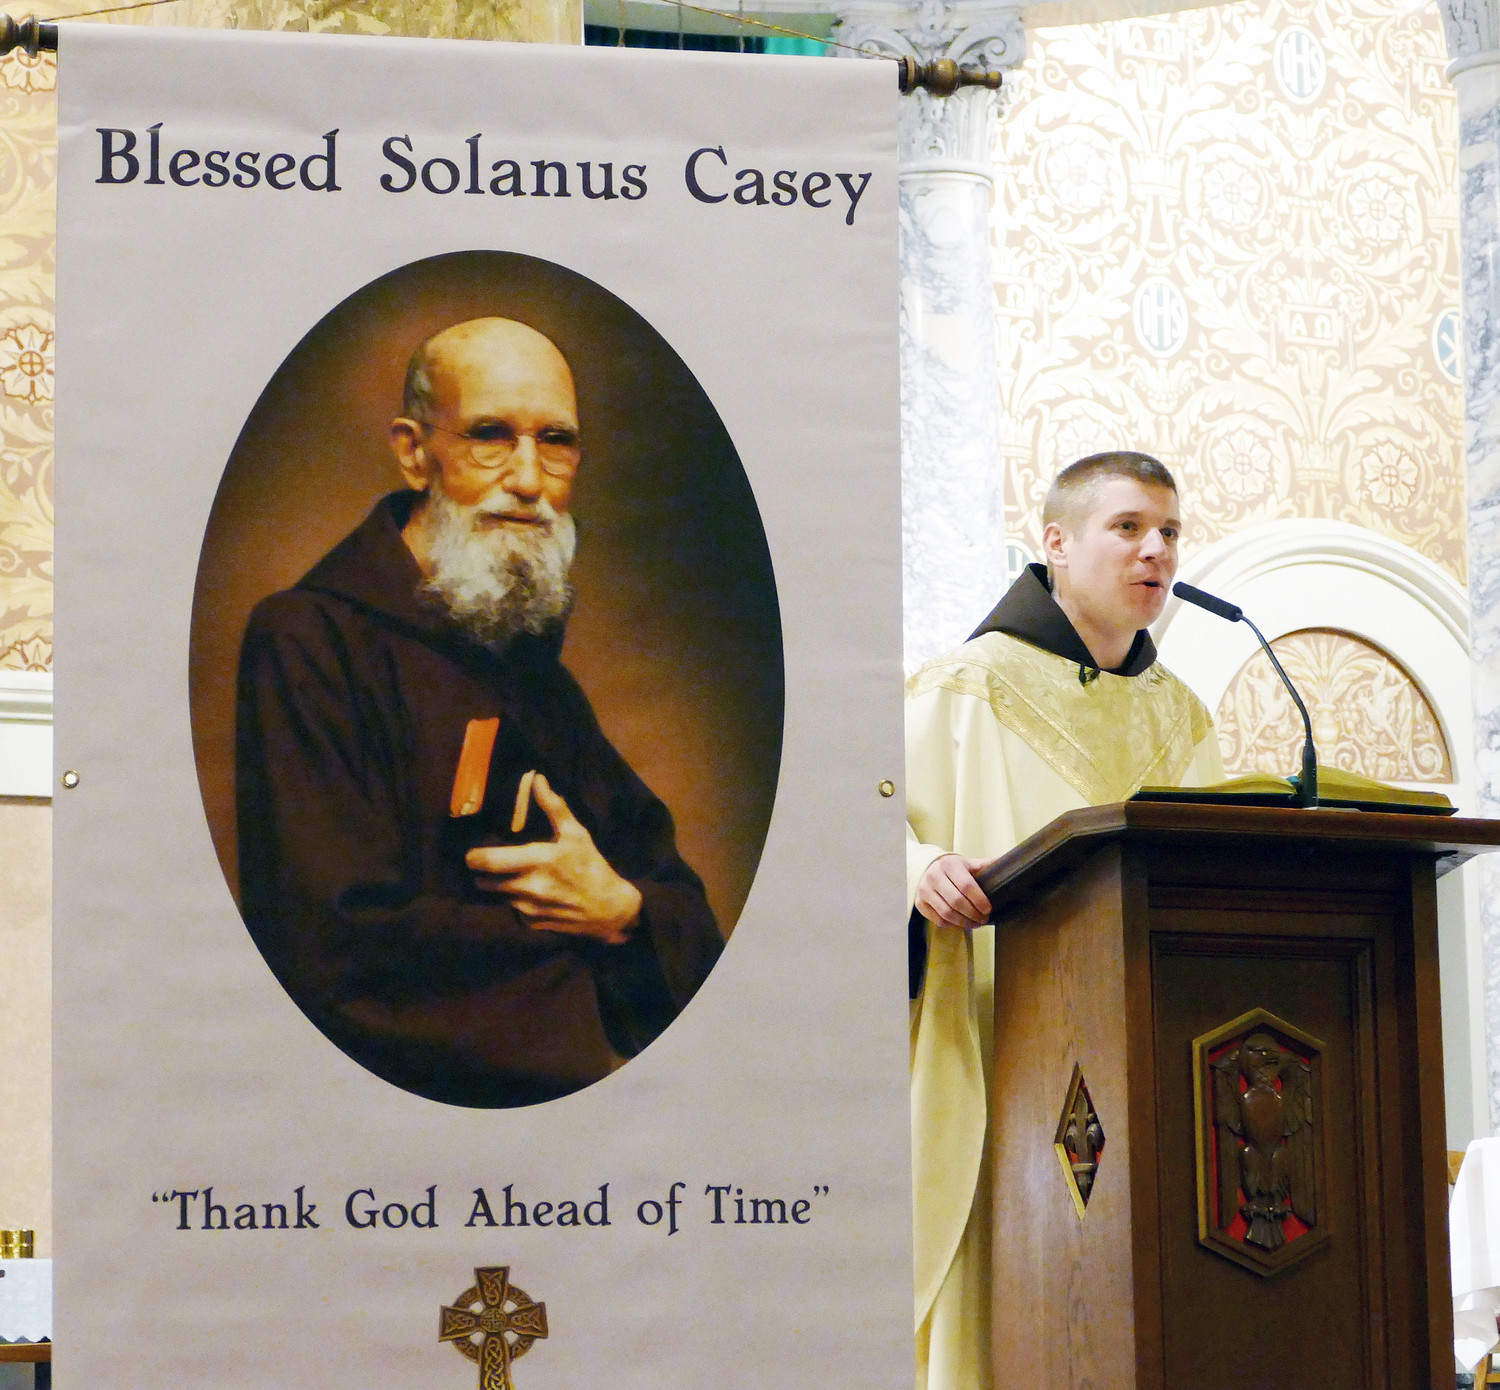 Solanus' 'Simple' Faith Makes Him Perfectly Blessed For Our